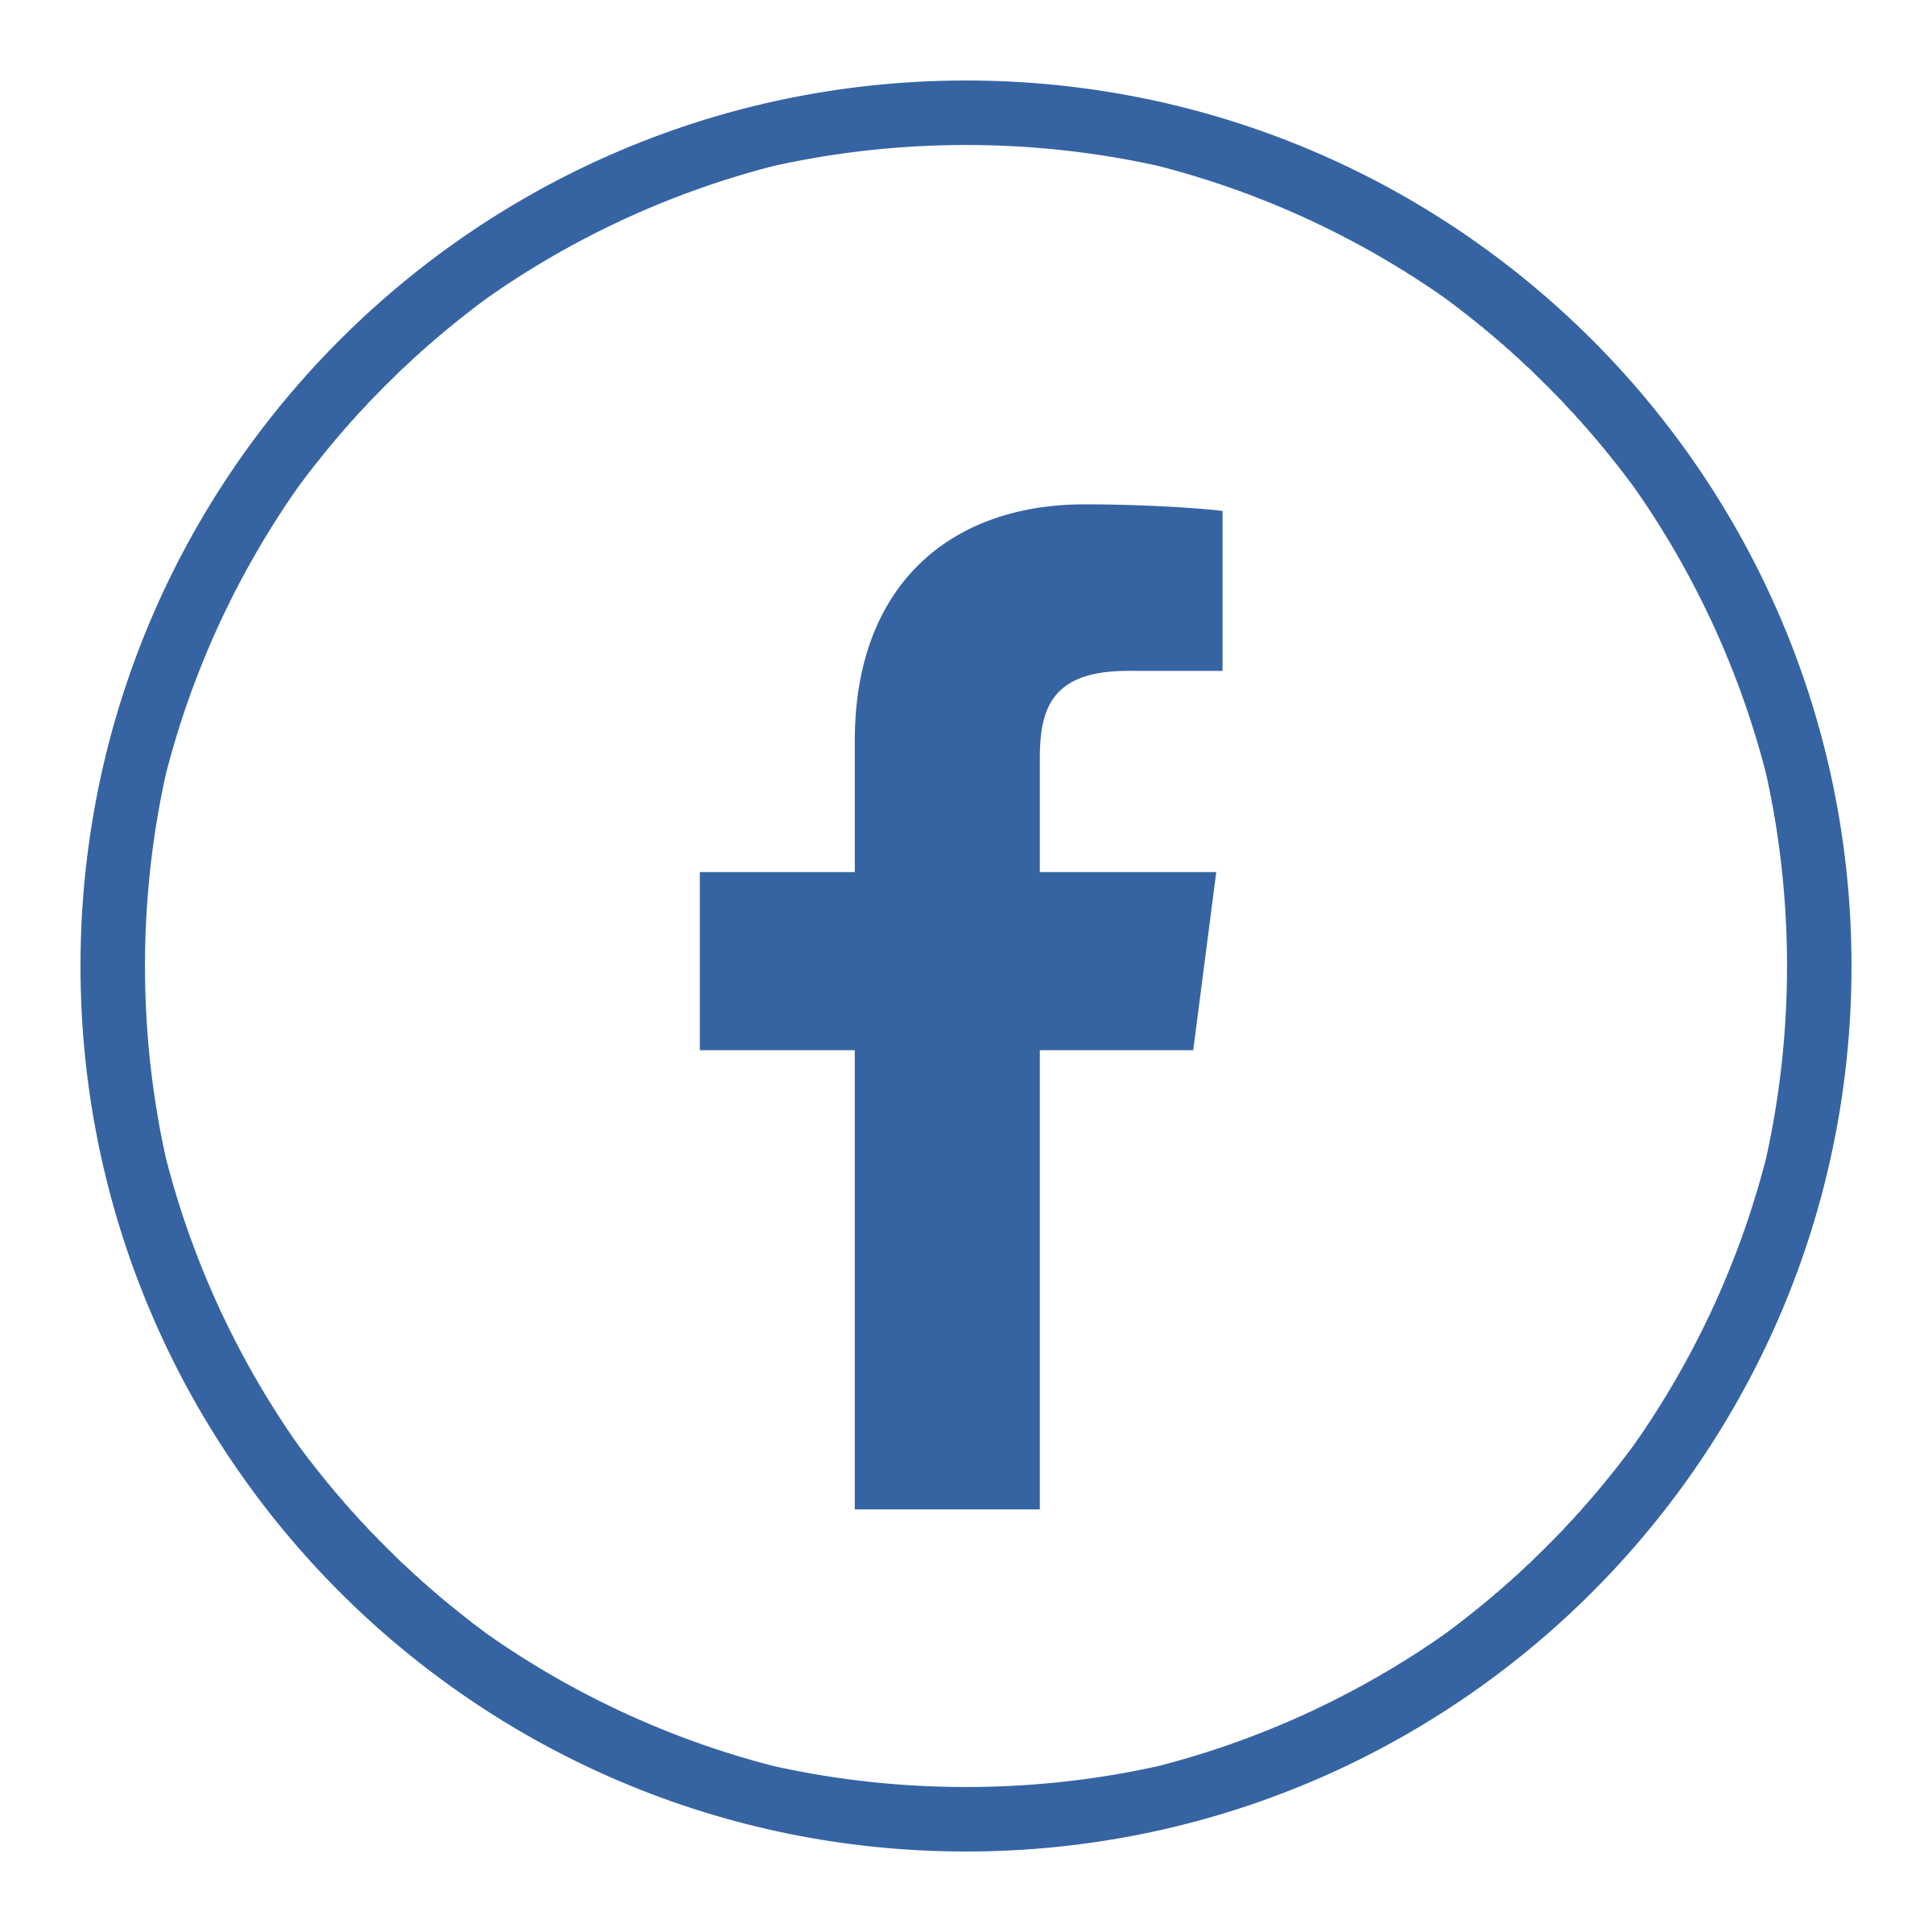 Logo facebook png. Circle pictures free icons